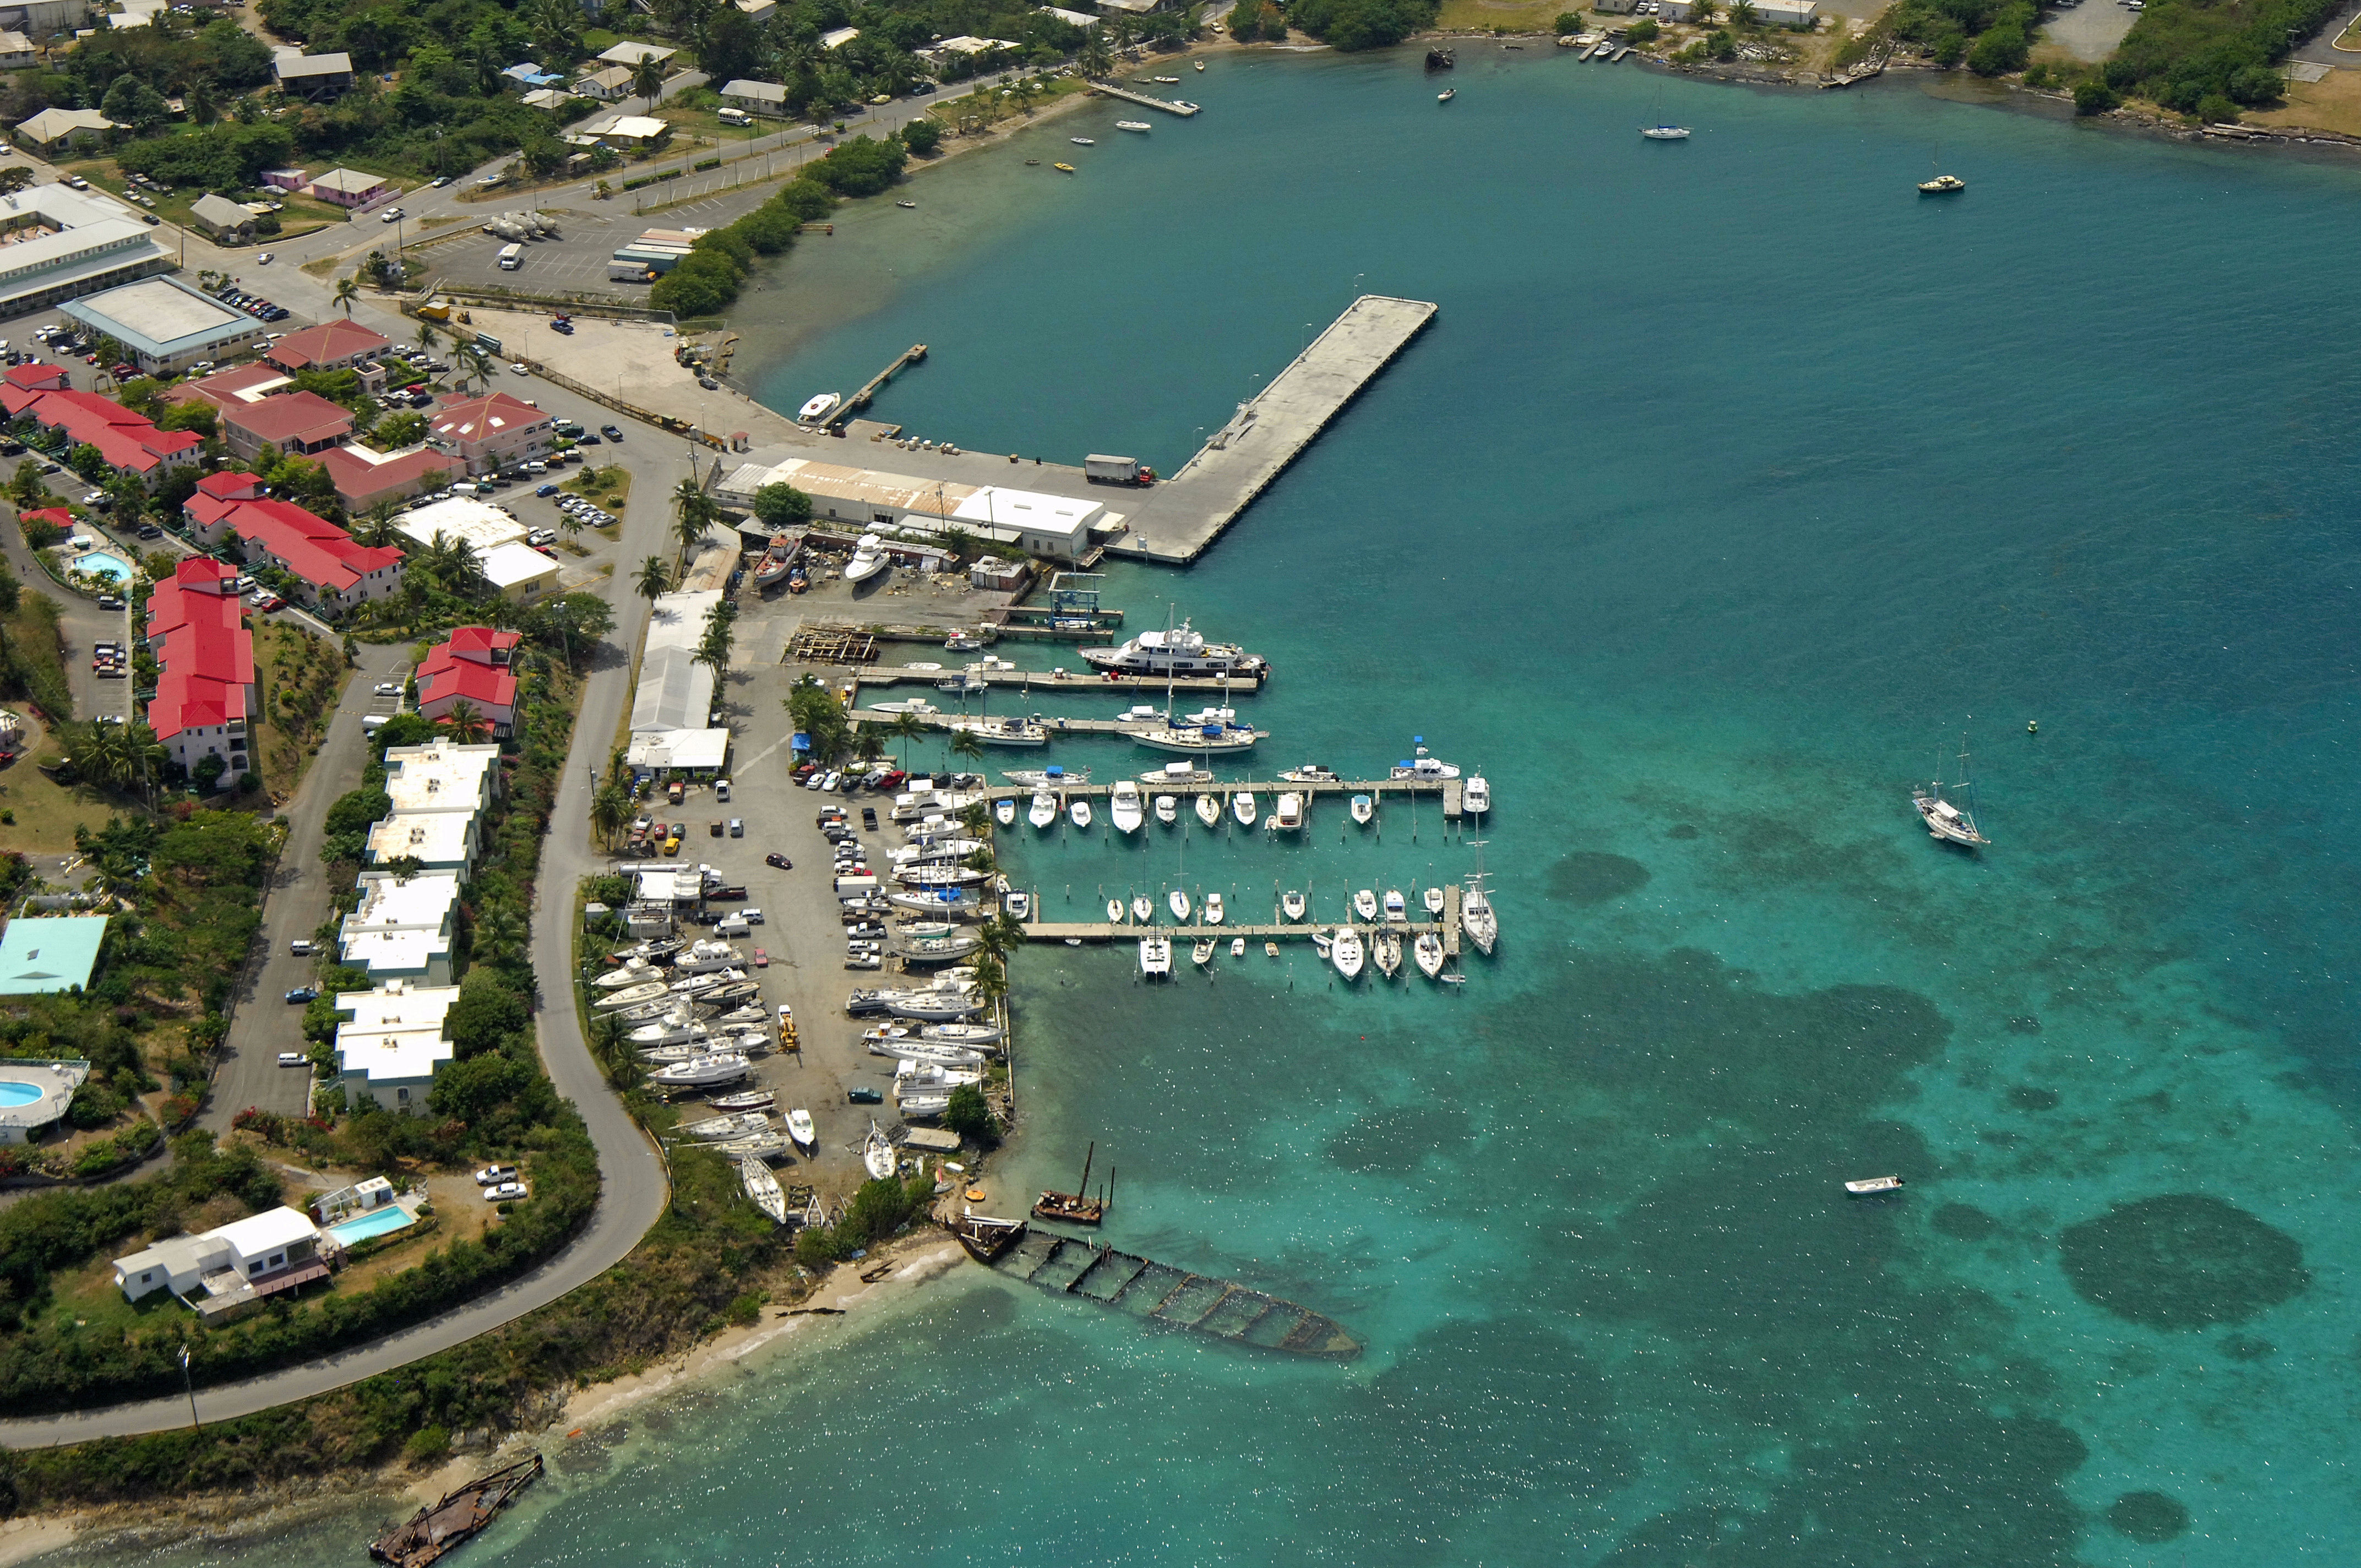 St Croix Marine In Christiansted St Croix U S Virgin Islands Marina Reviews Phone Number